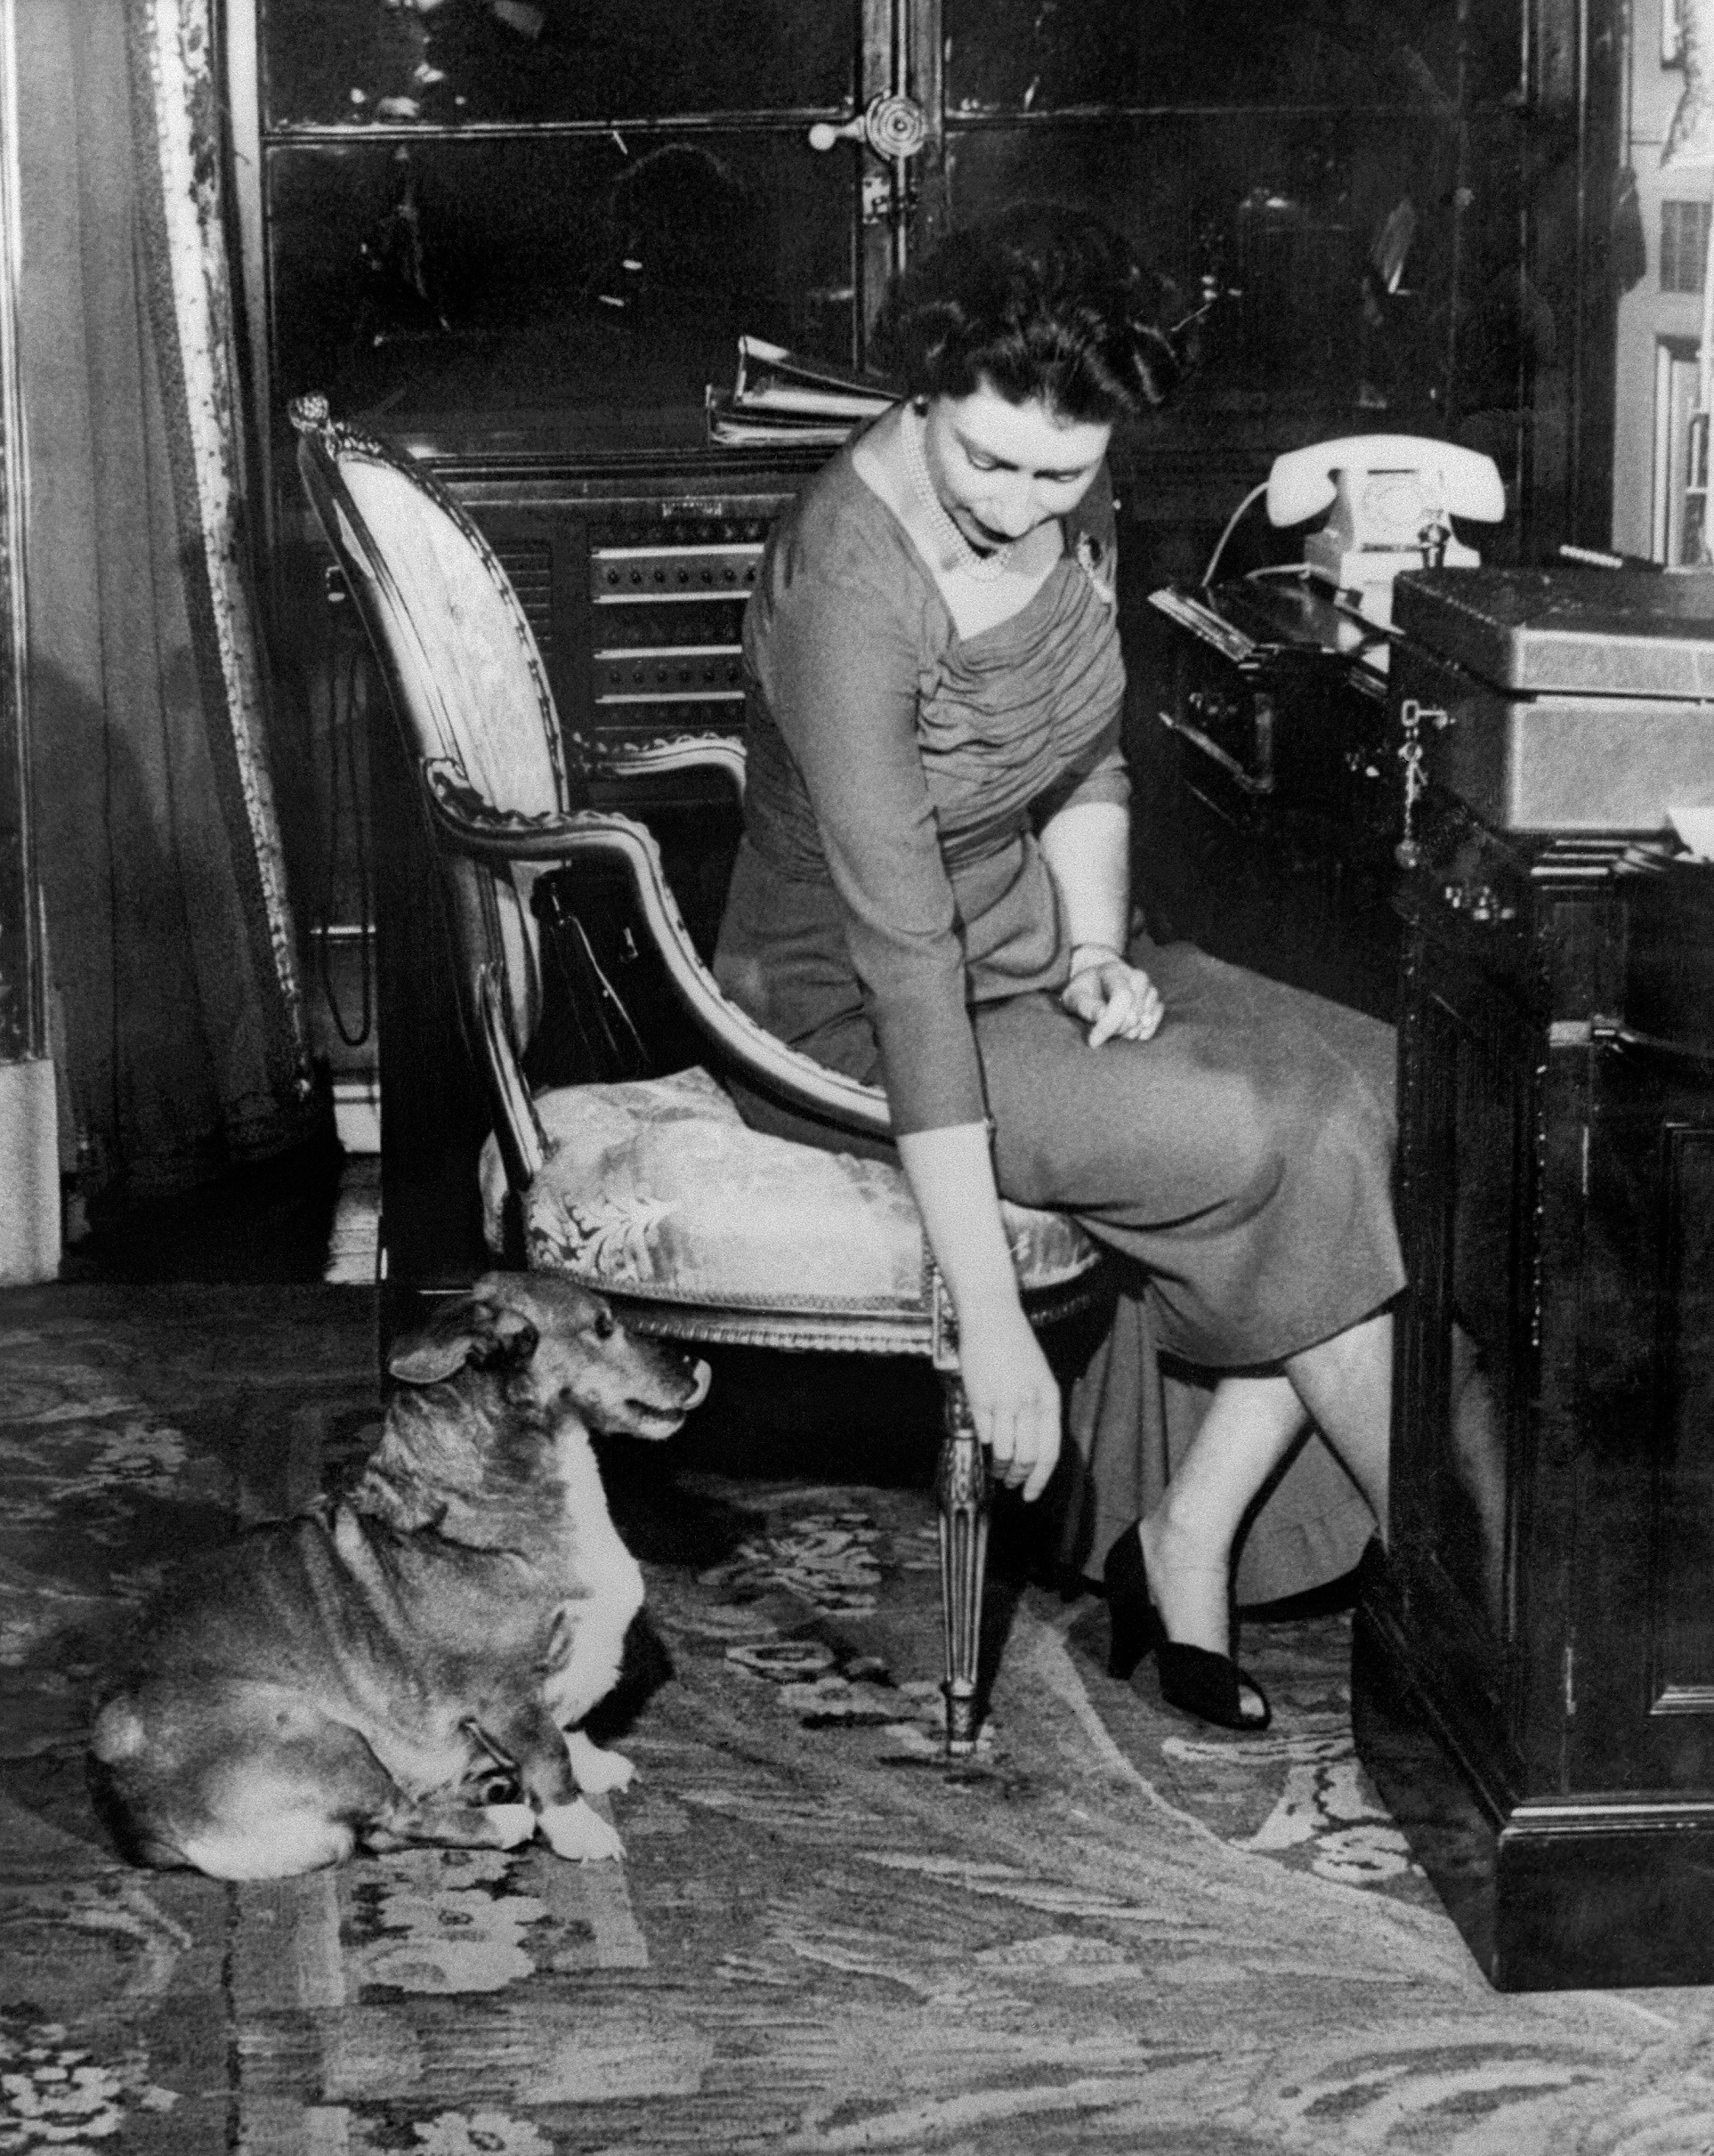 Britain's Queen Elizabeth II in her office with her corgi in 1959